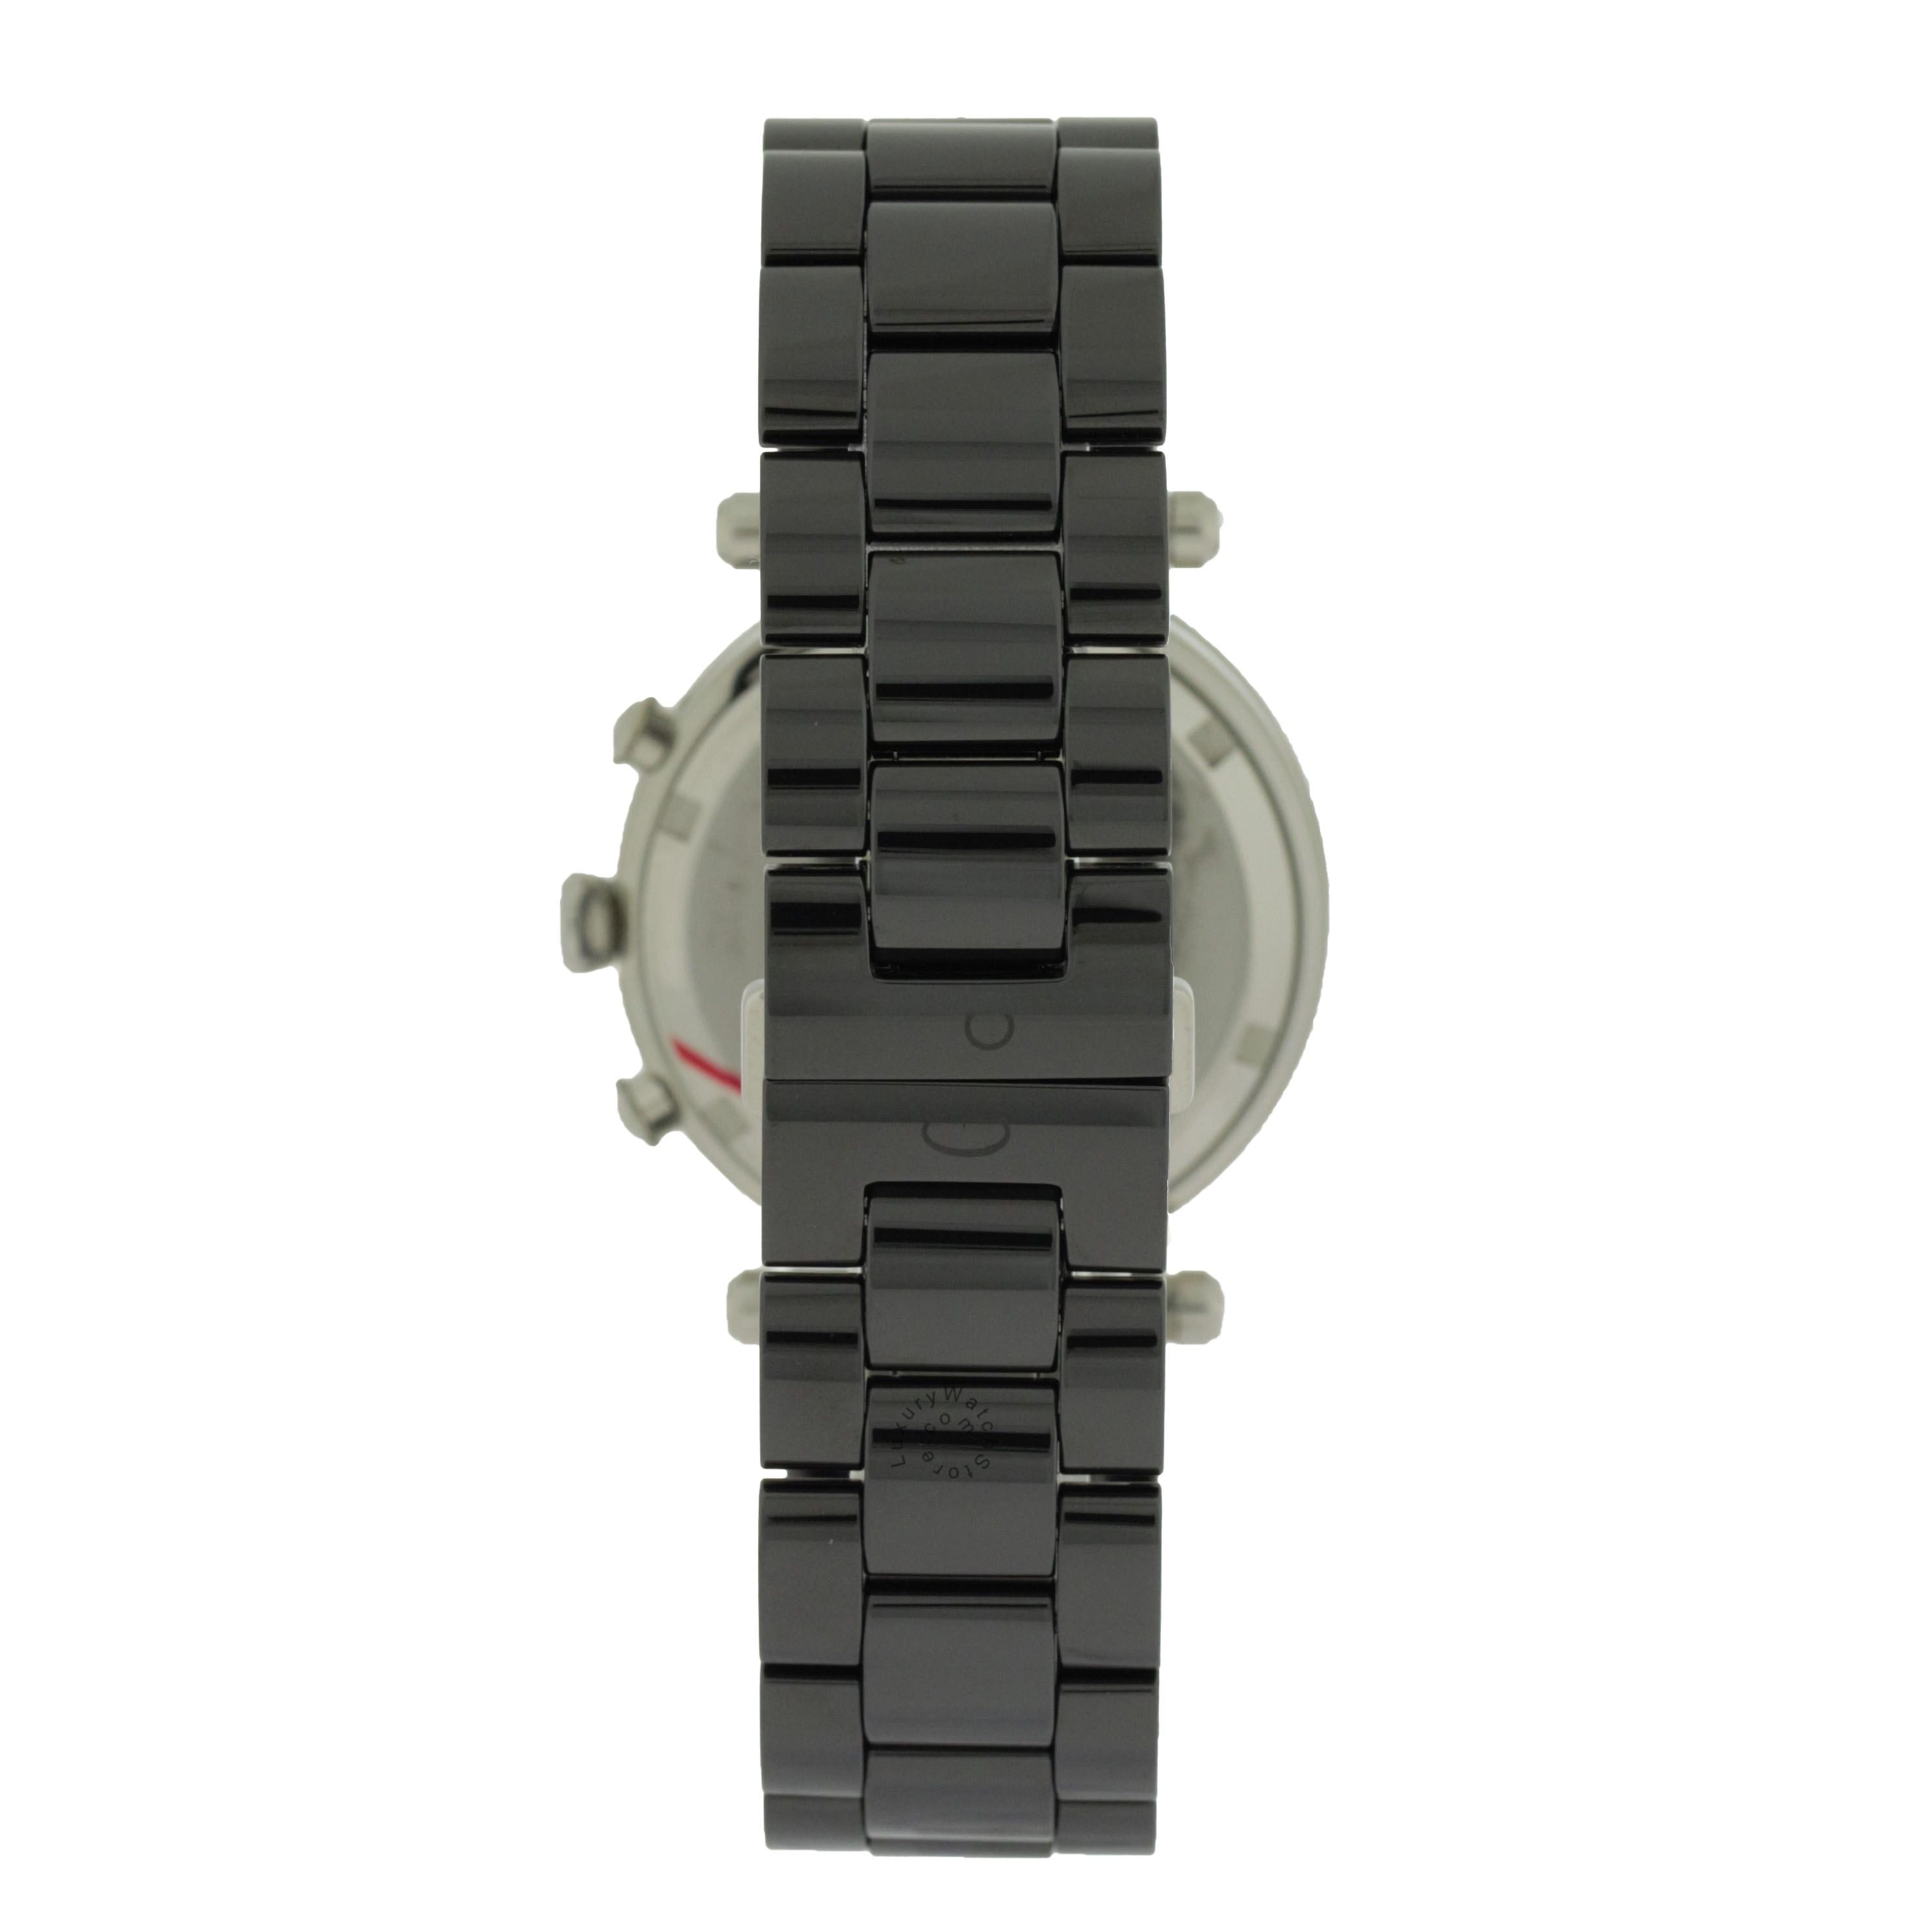 Guess GC Black Dial Black Ceramic Quartz Women Watch G43001M2